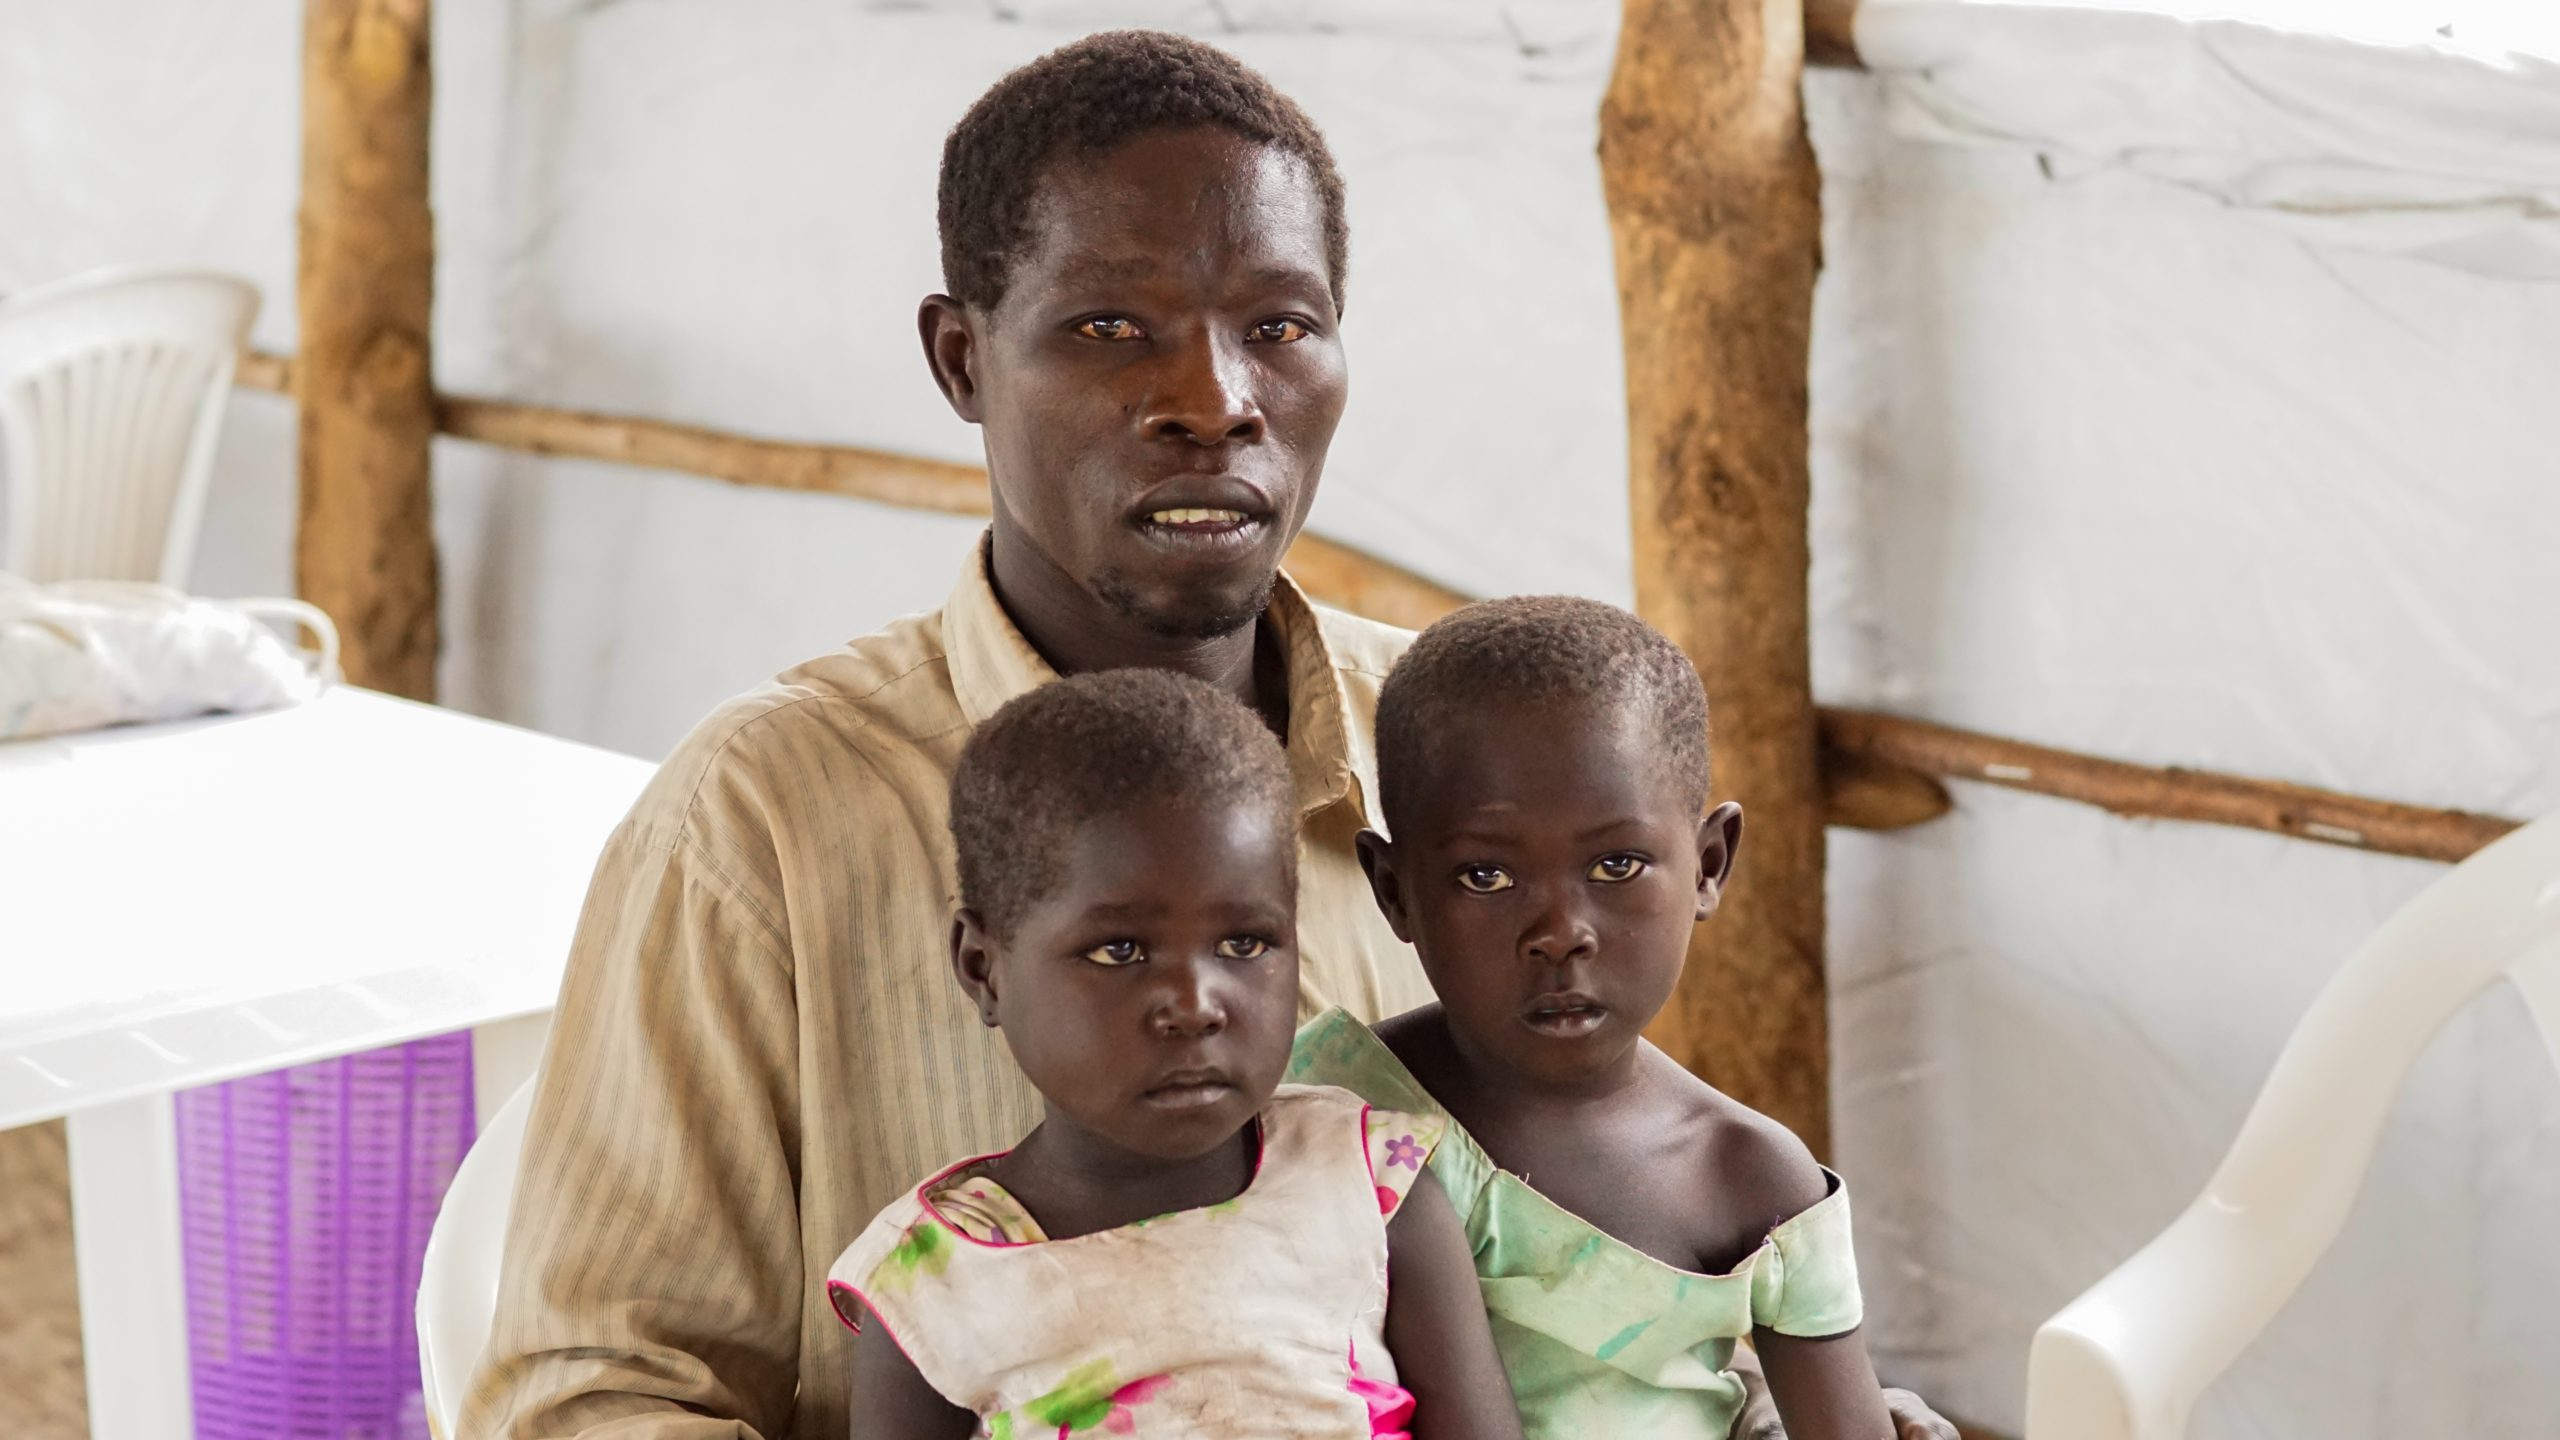 Aloro Bosko is 38-year-old single father of twin girls: Mary and Estella, whose mother died shortly after giving birth. Aloro escaped his home village of Boma in the Yei River State and found safety at the Imvepi Refugee Camp in Uganda.